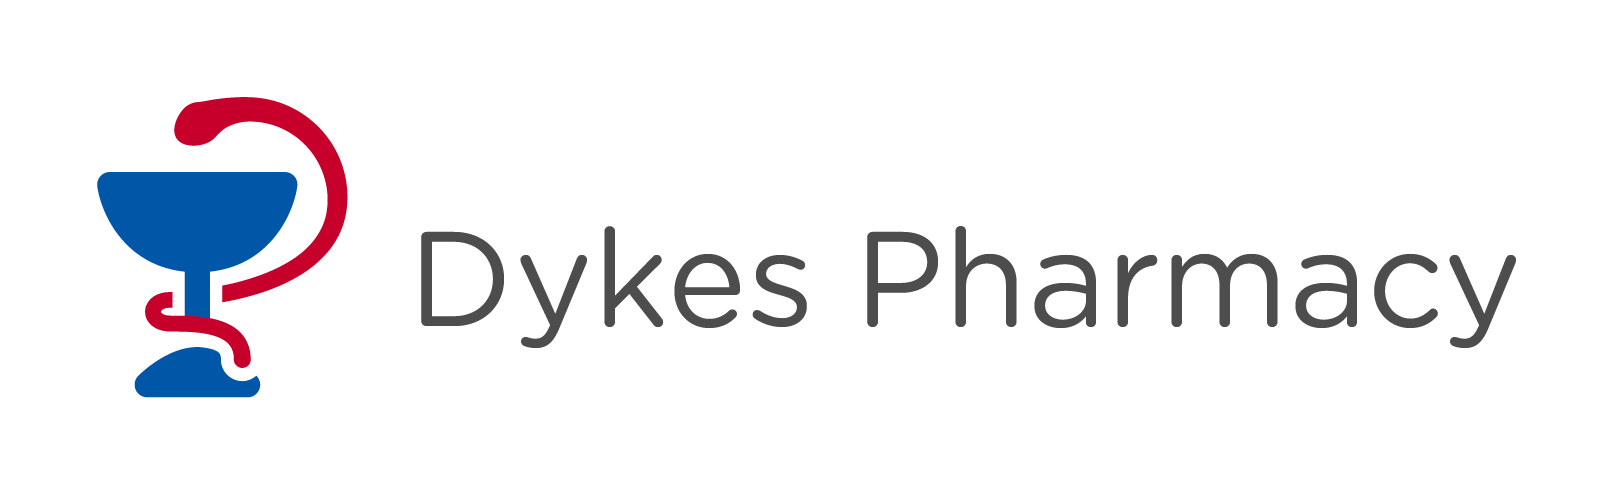 New - Dykes Pharmacy